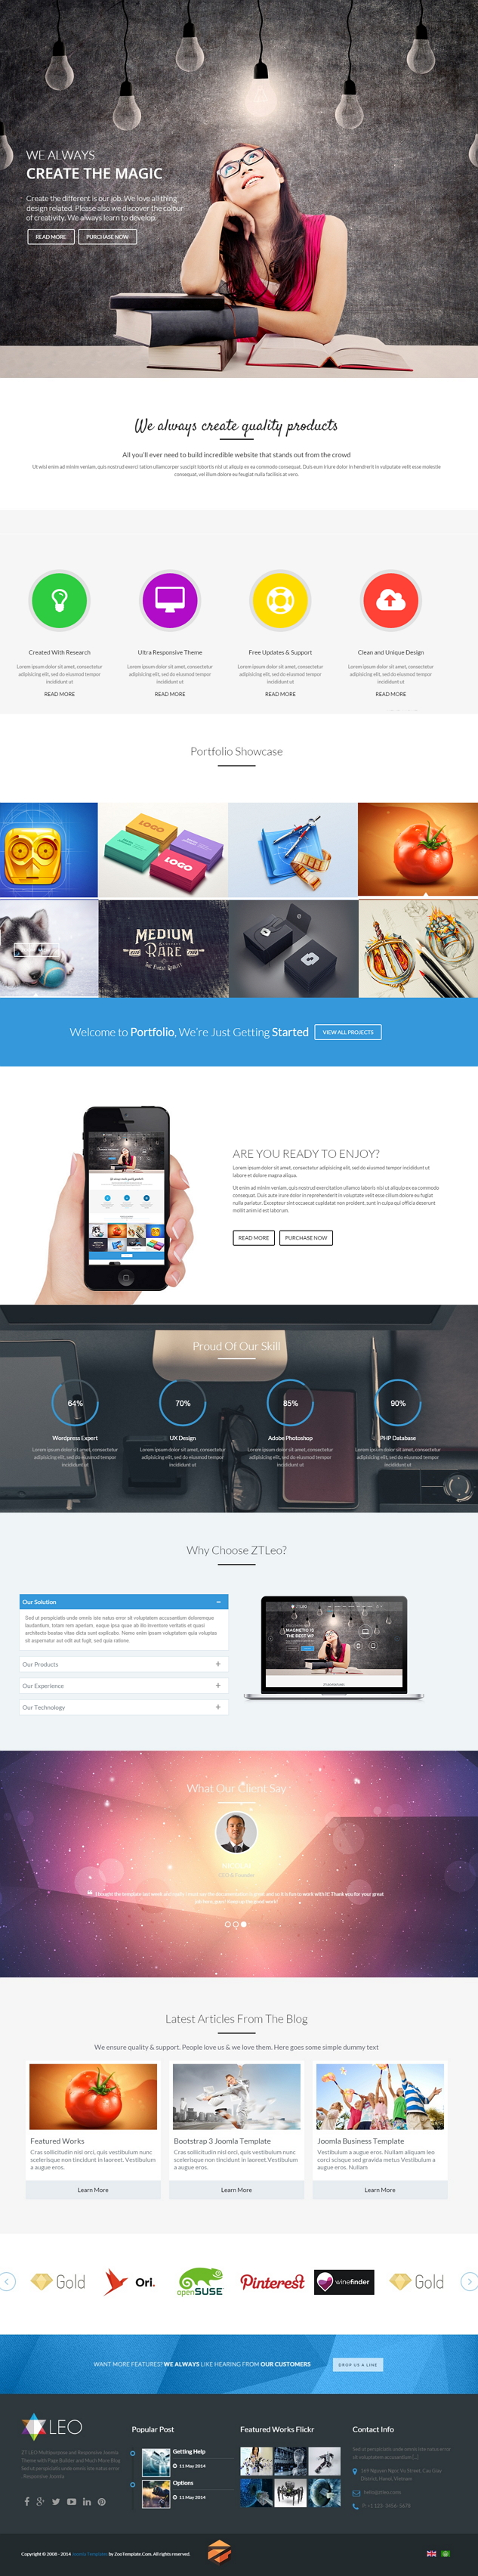 ZT Leo is an responsive Joomla Template. This theme is suitable for multiple purposes websites s ...